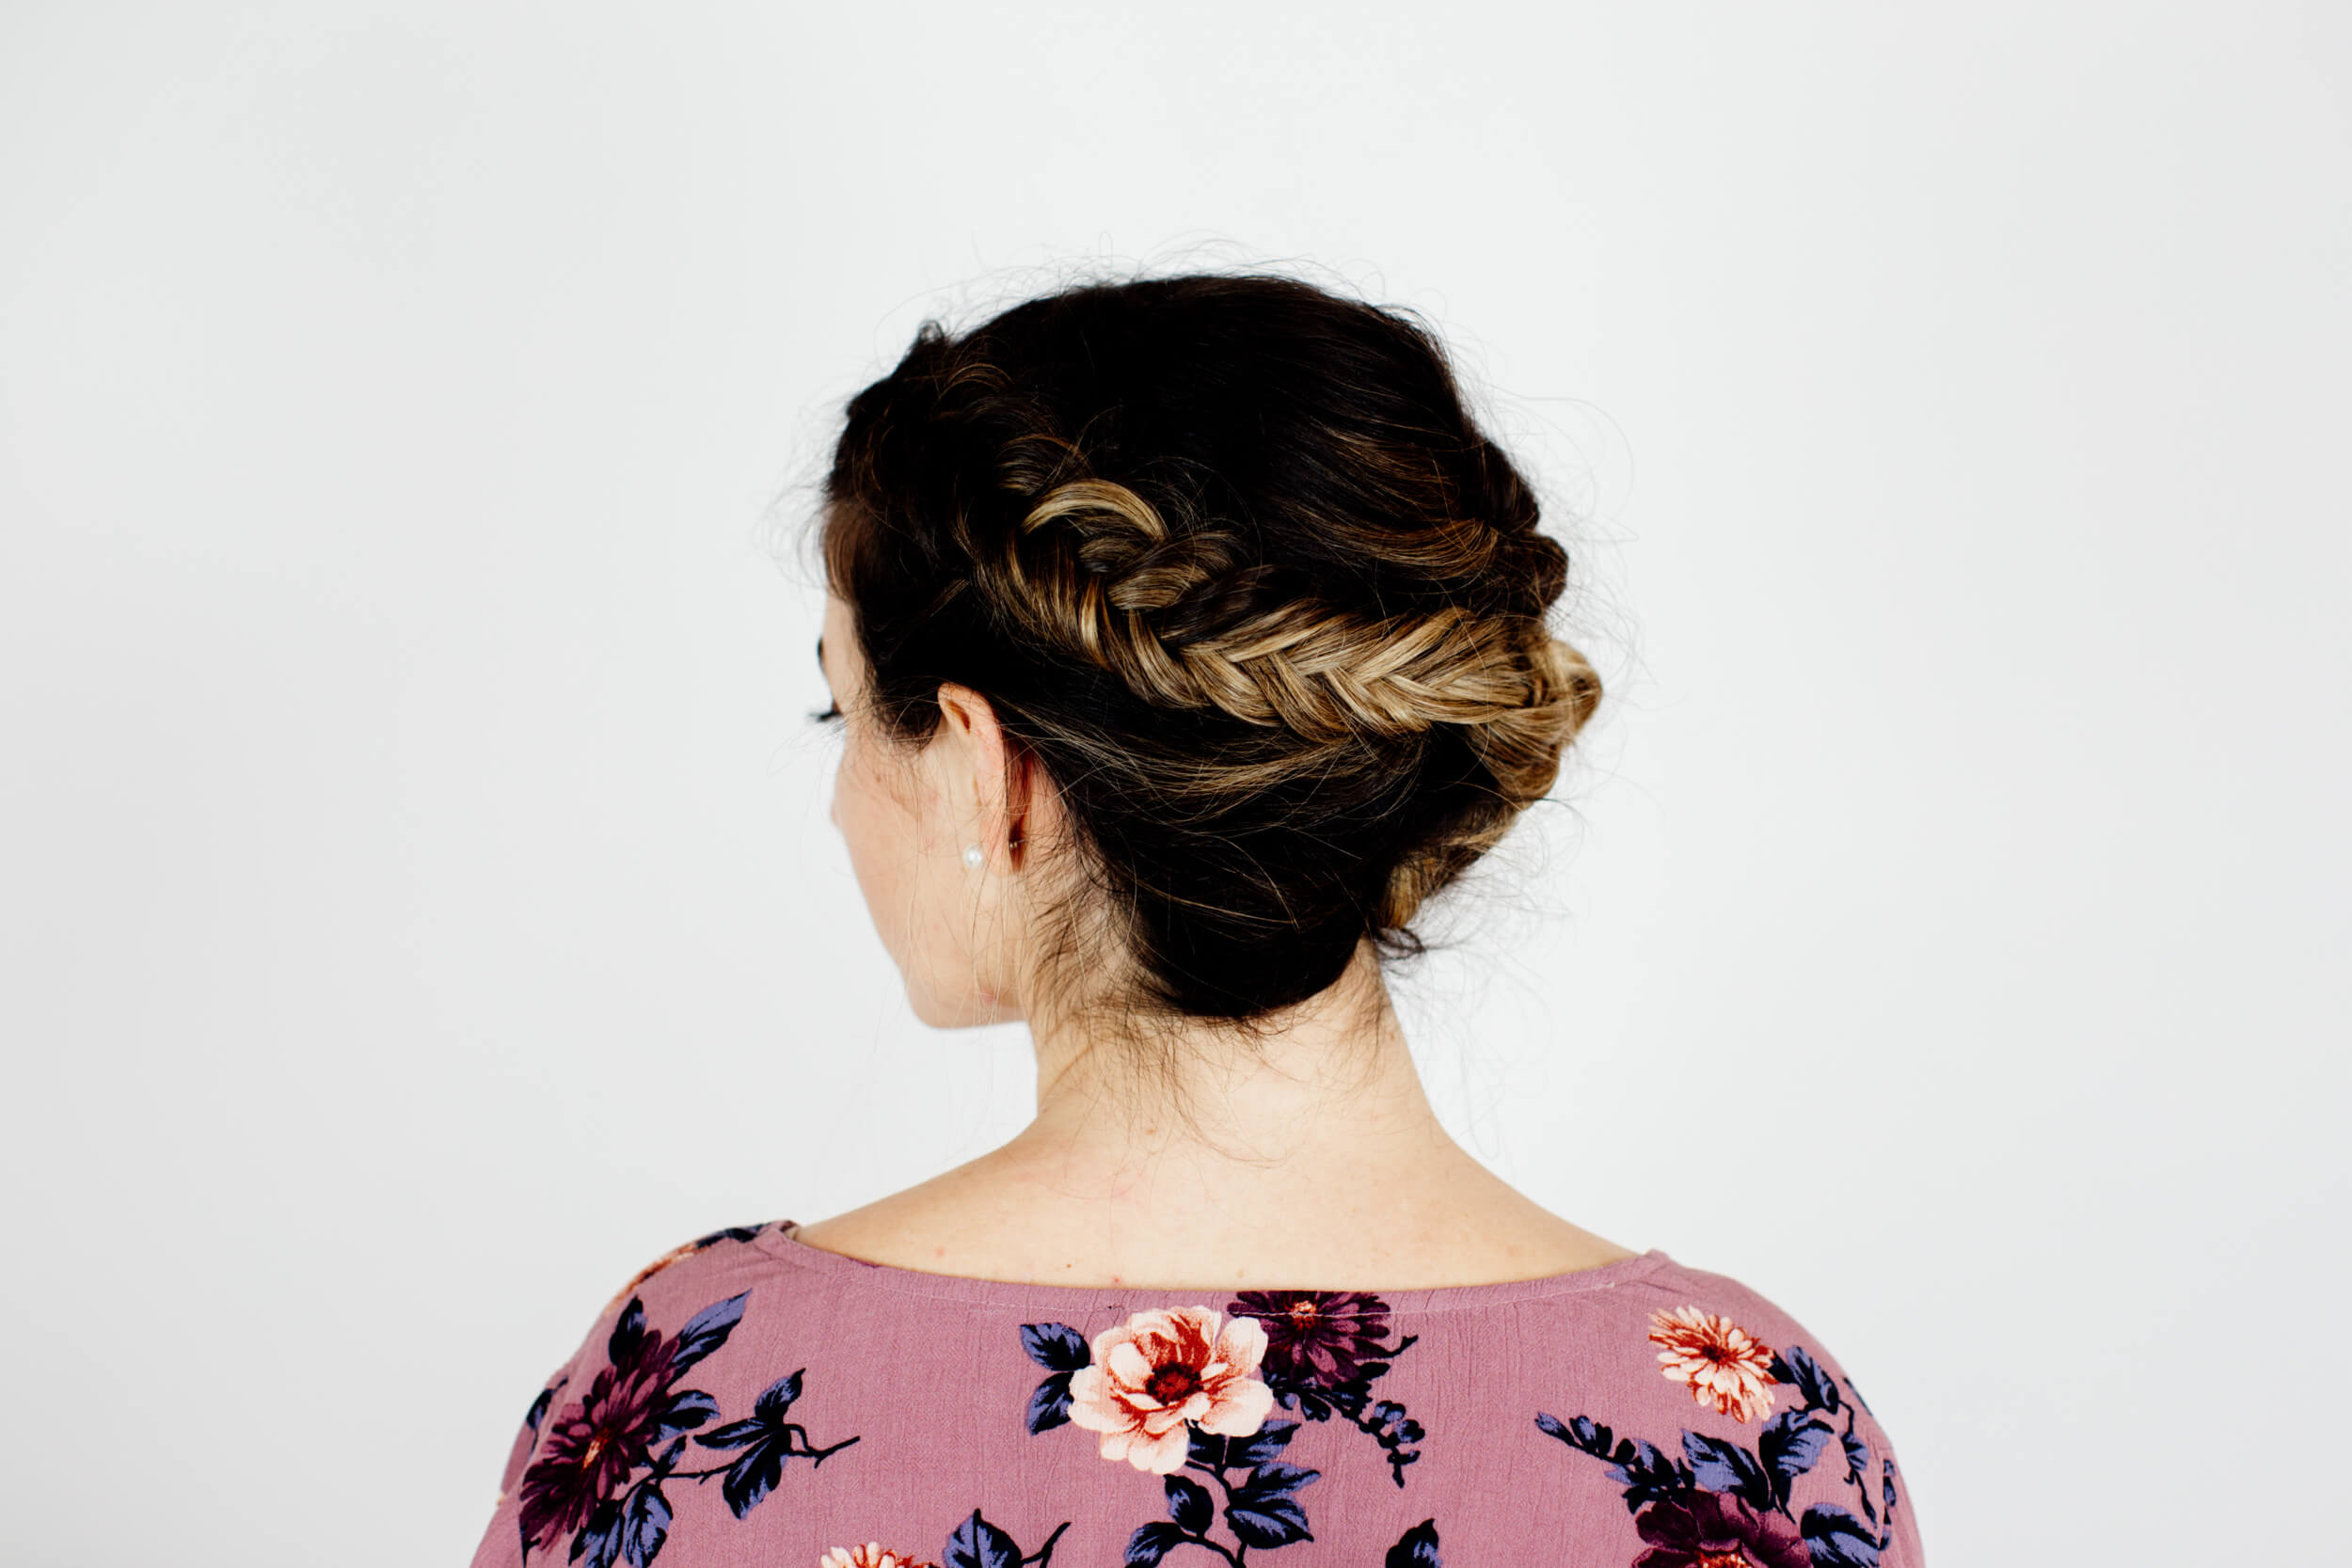 A woman wearing an intricate braid in her hair seen from the back.